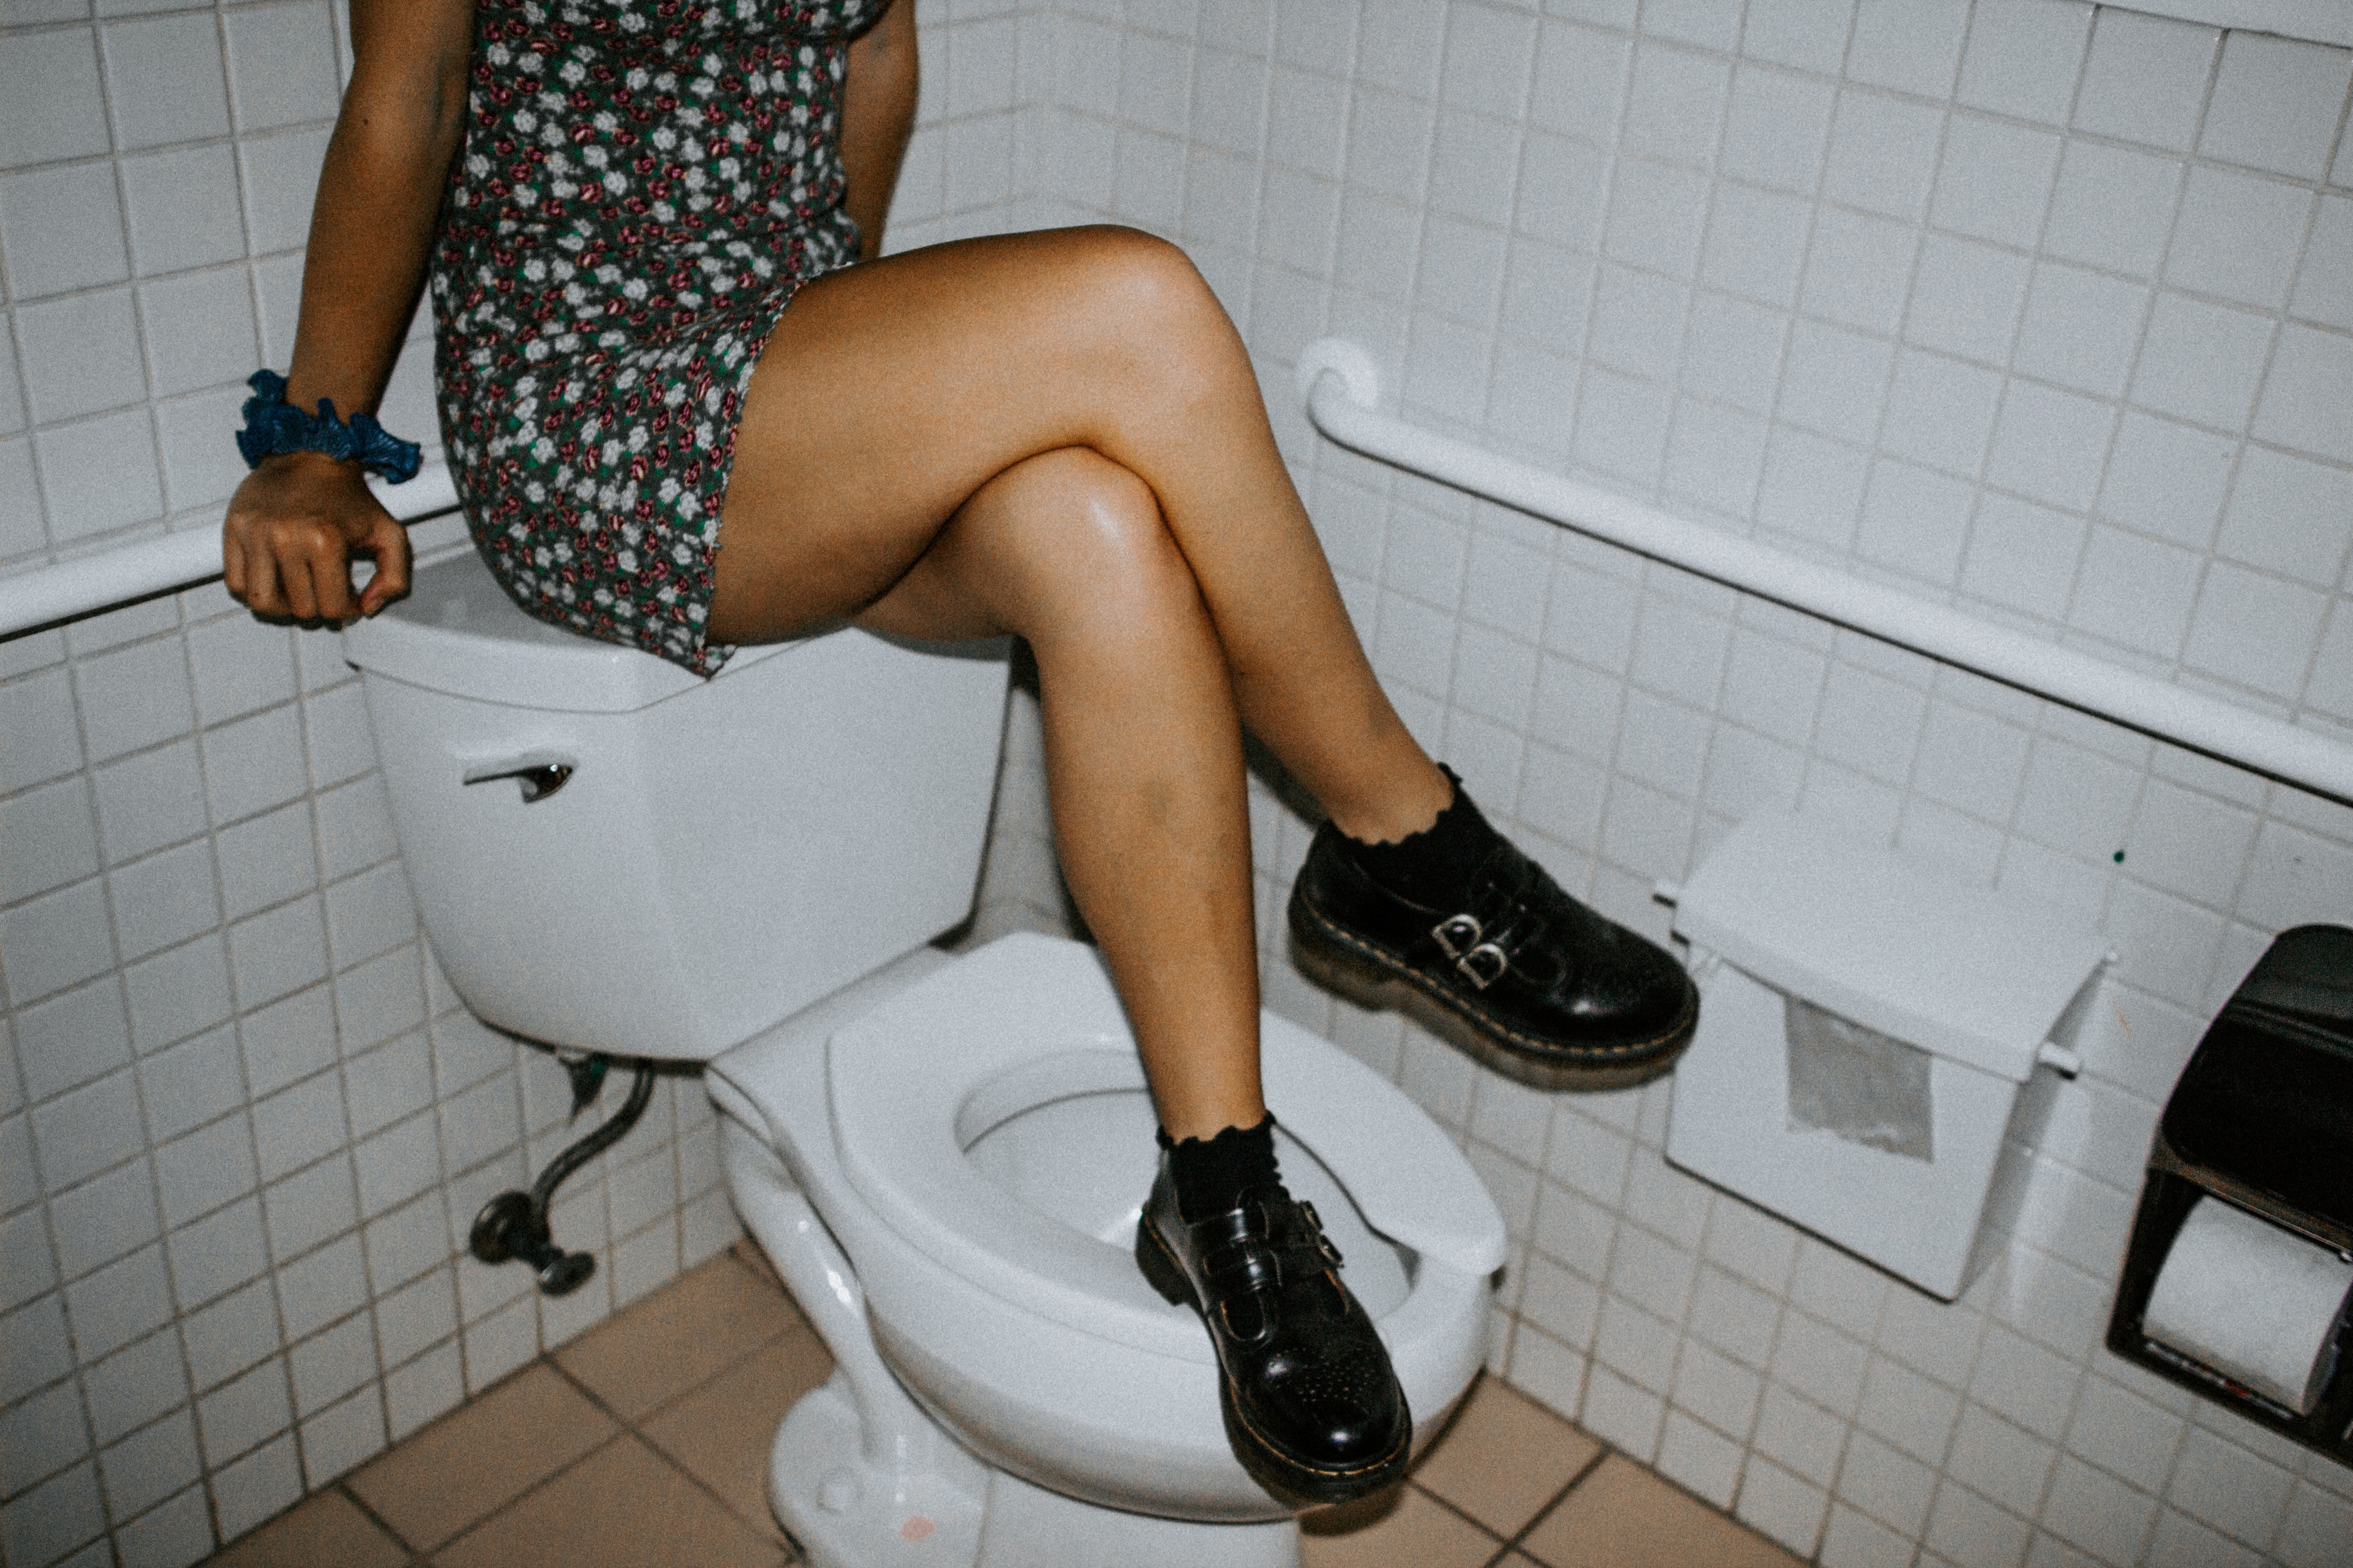 A girl in a mini-dress sits on top of the toilet tank in a public restroom with legs crossed and one of her feet on the seat.